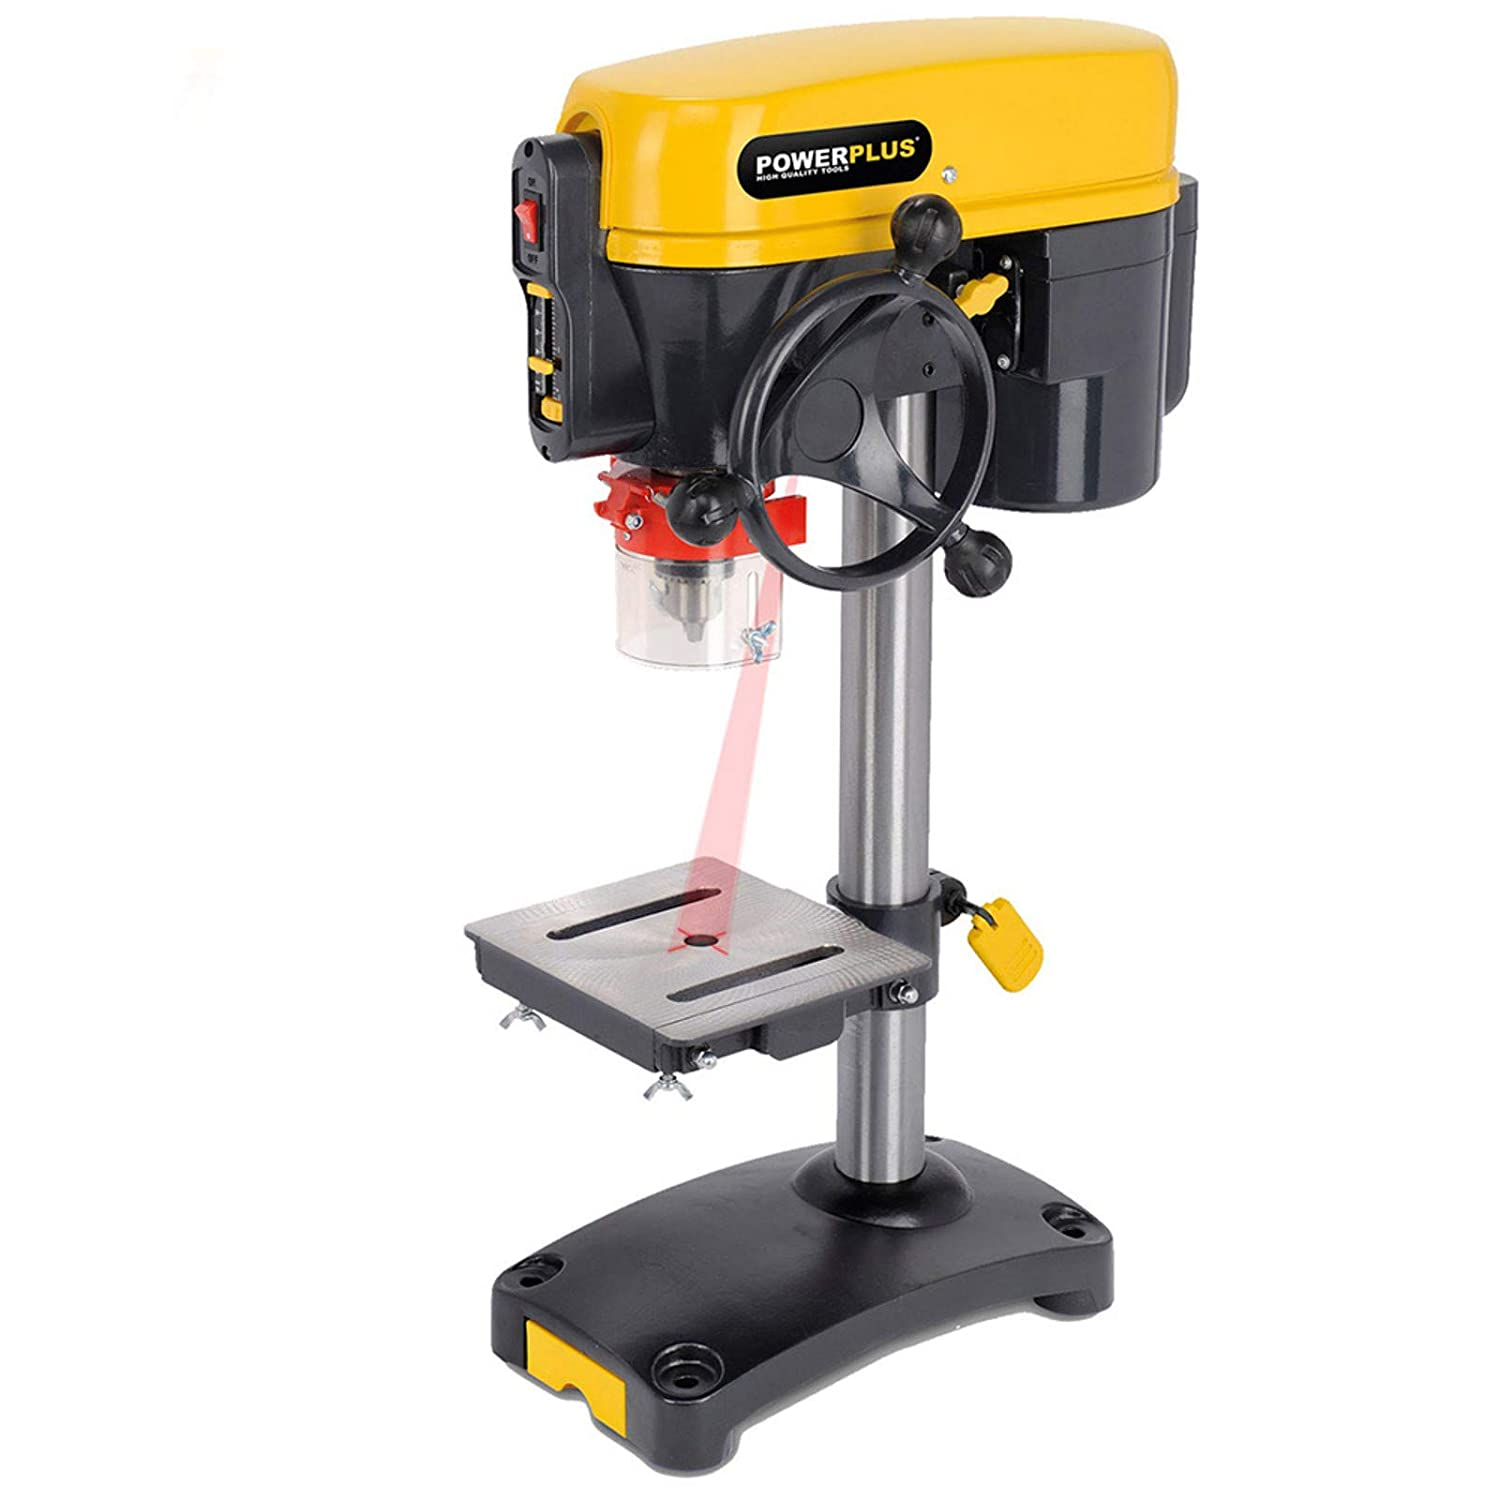 POWERPLUS 5 Speed 350 watt, 240v Motor Bench Mounted Drill Press with Laser Guide POWX152-3 Year Home User Warranty